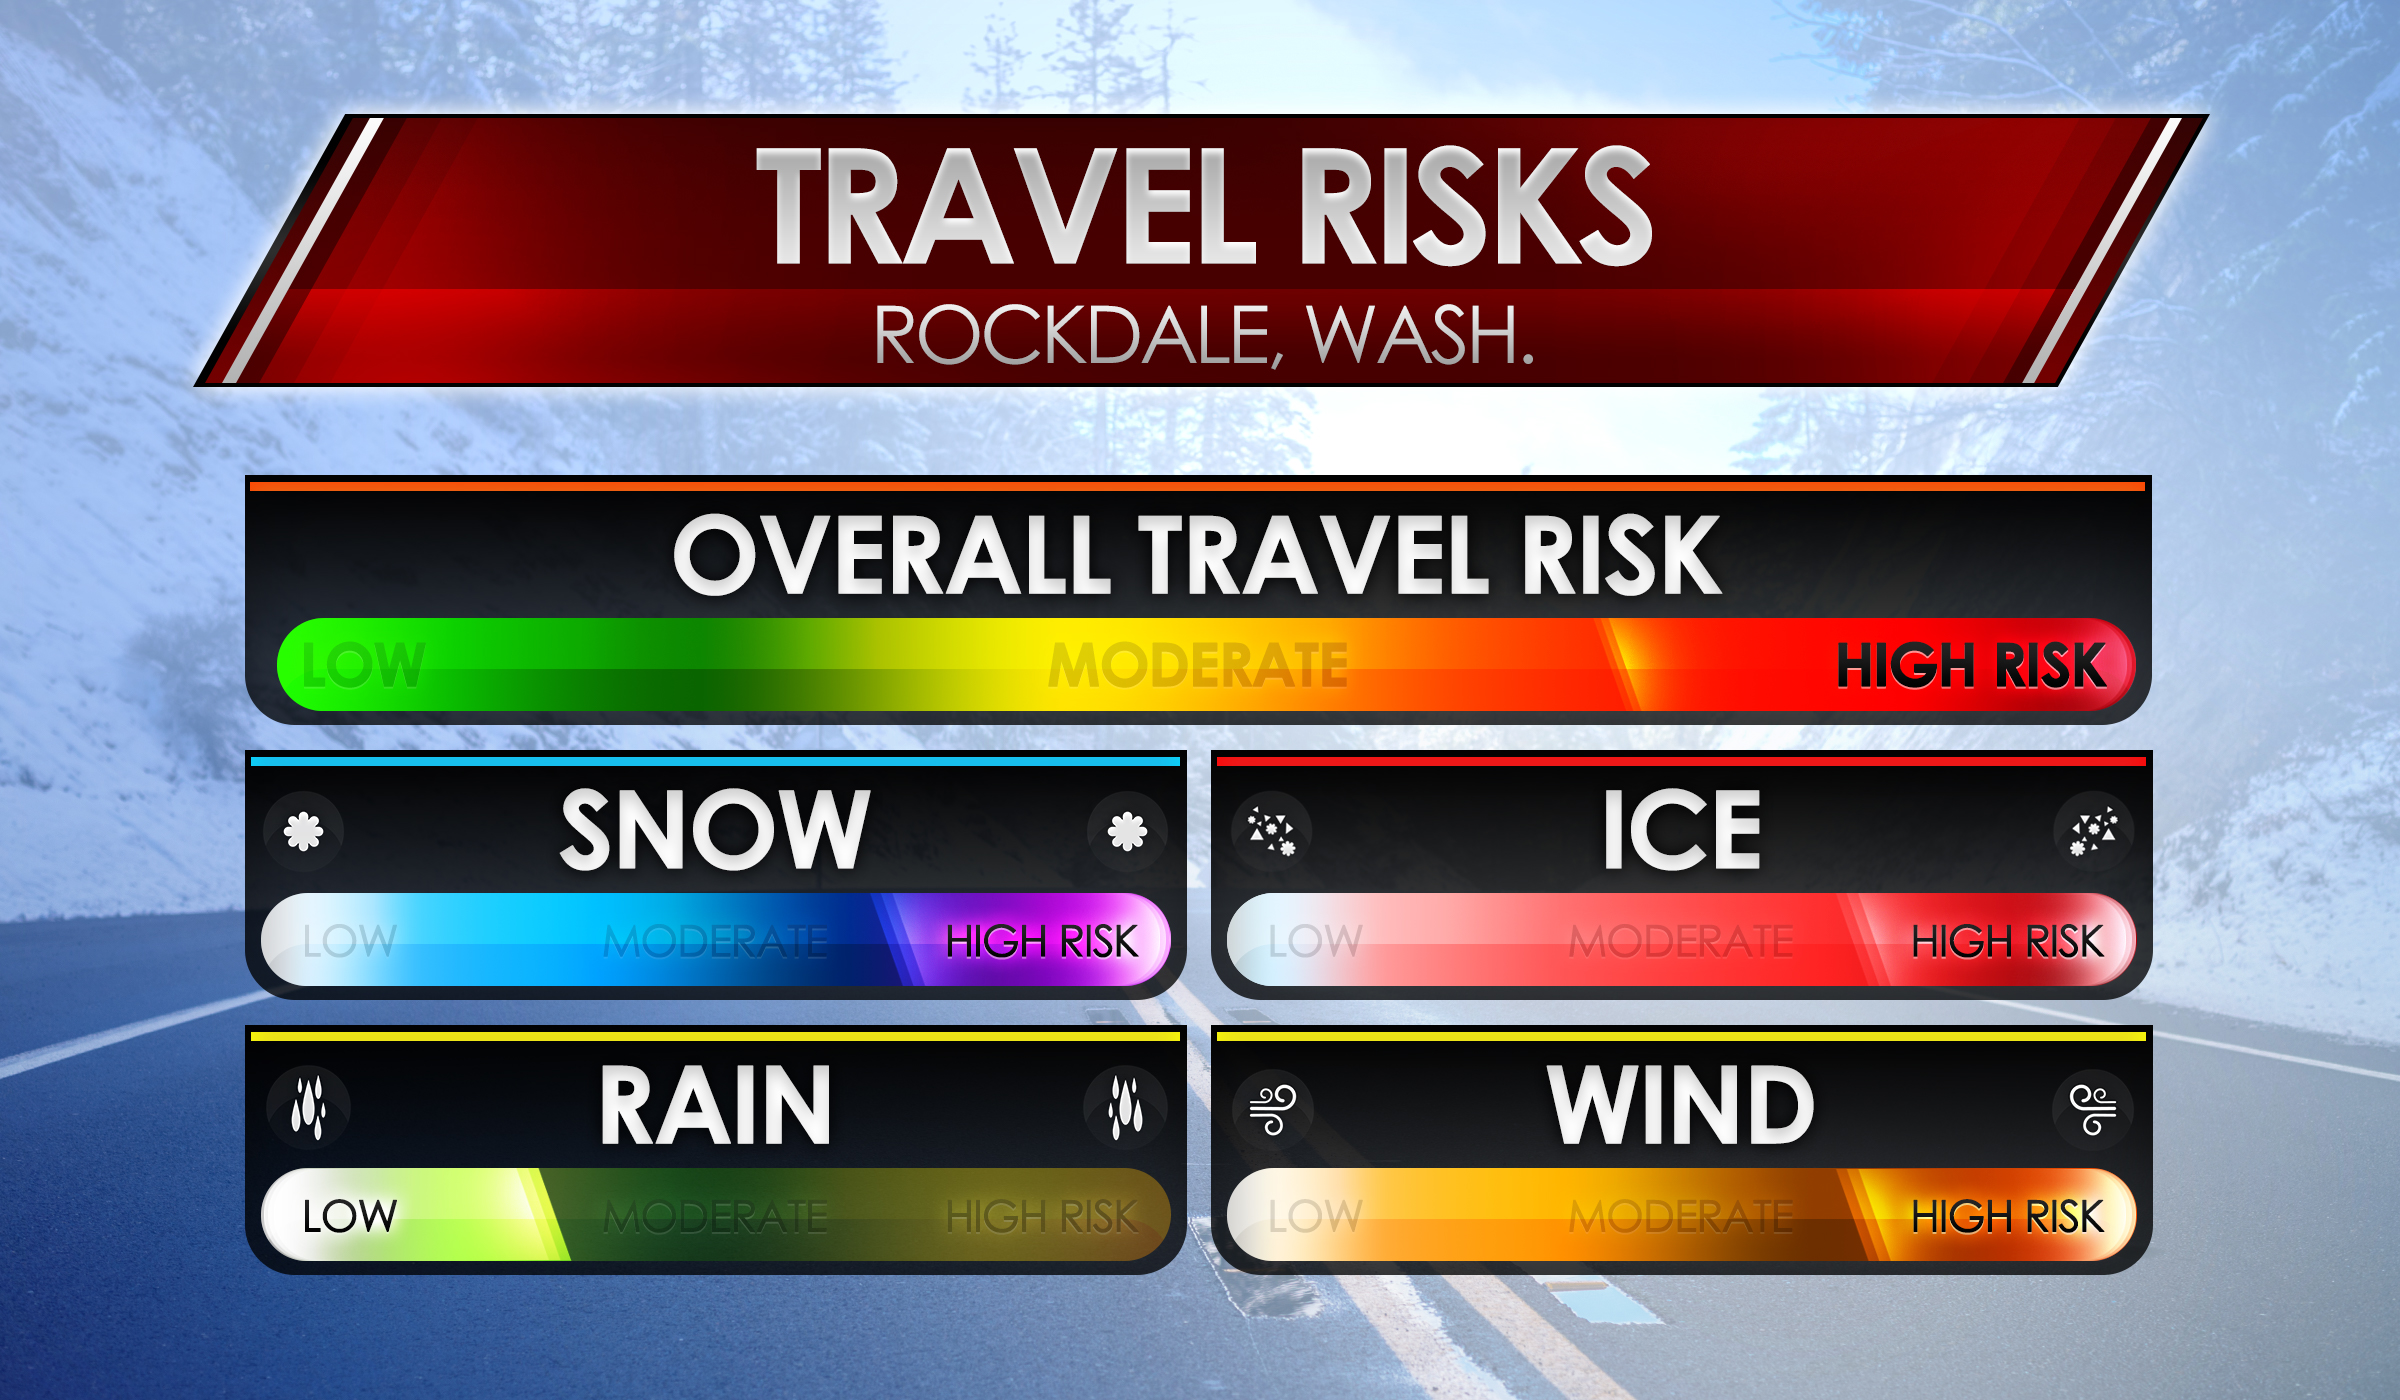 Travel Risk Rockdale